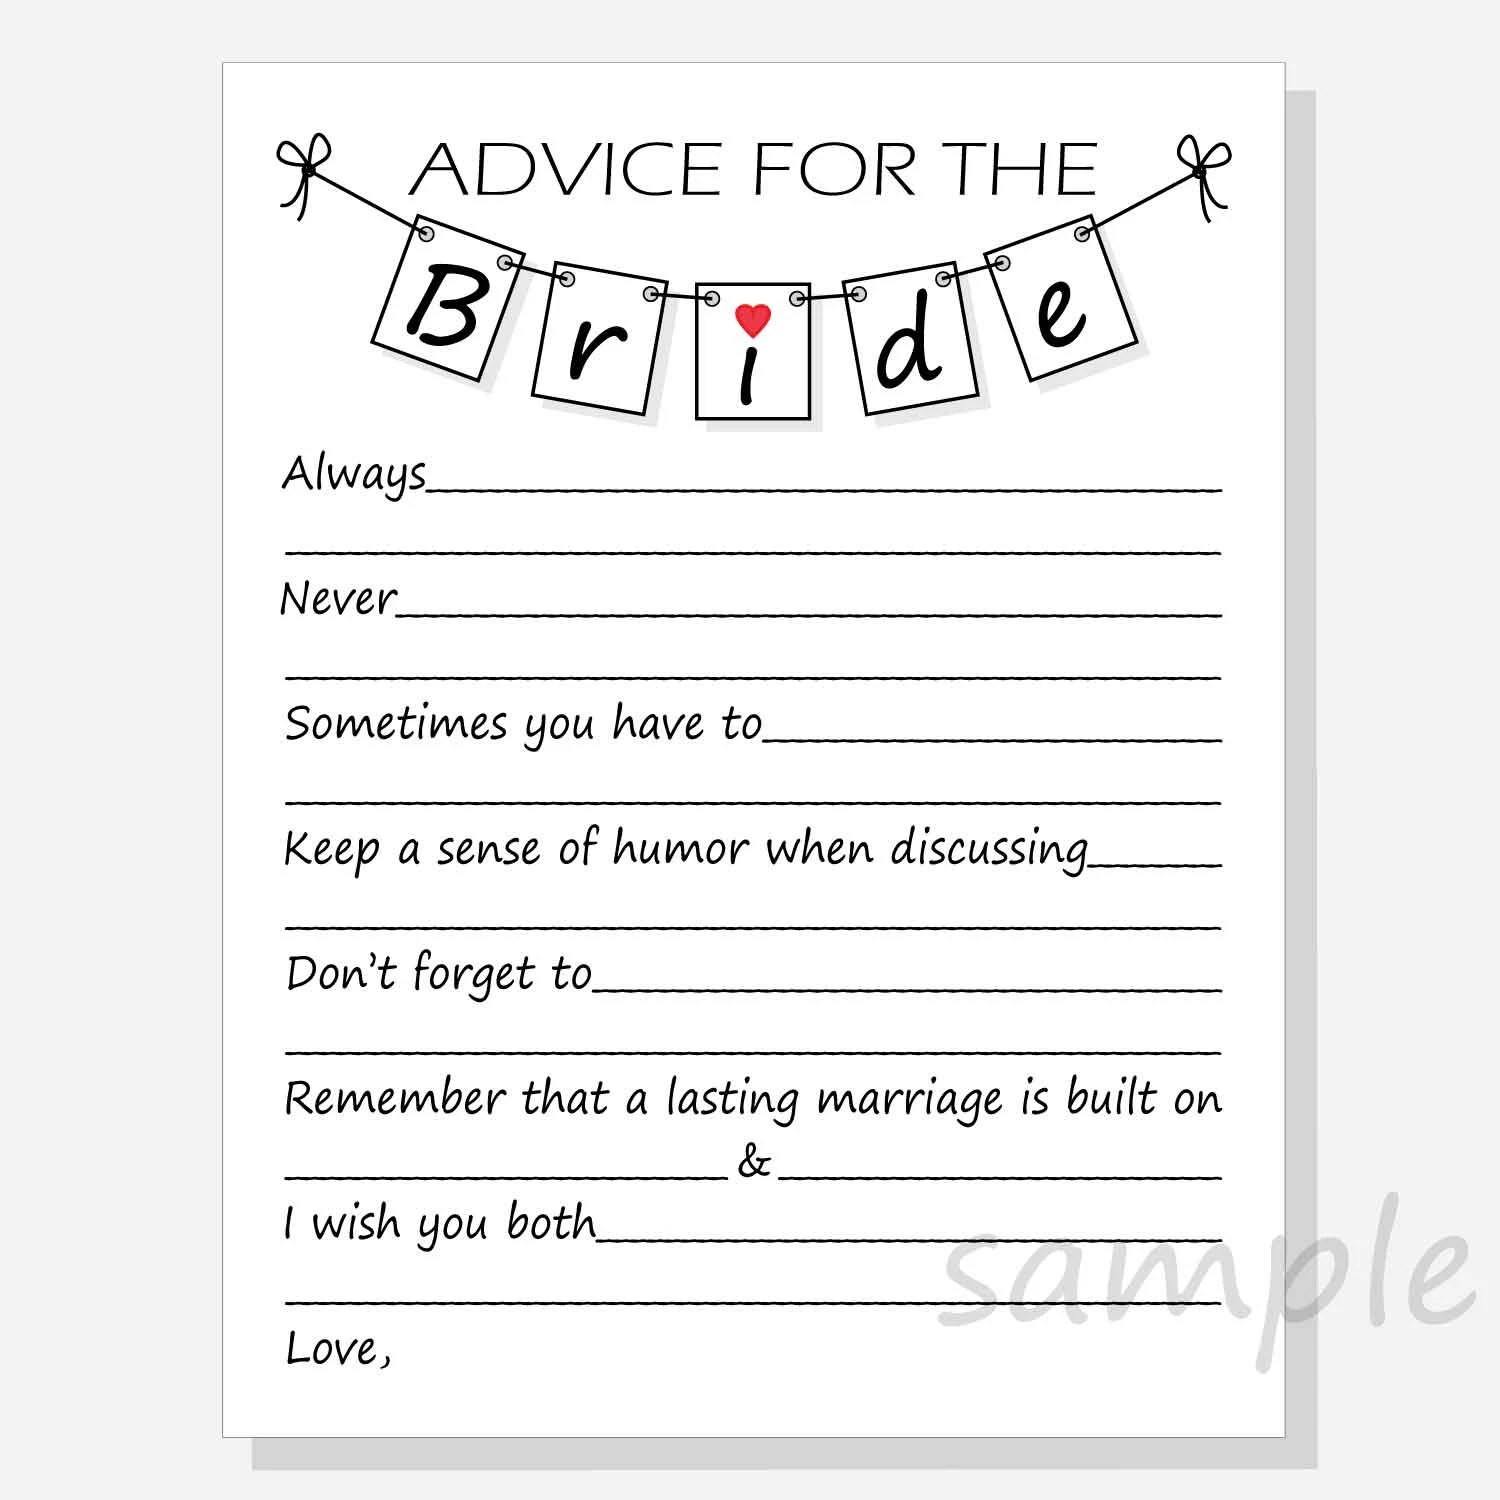 Diy Advice For The Bride Printable Cards For A Bridal Shower